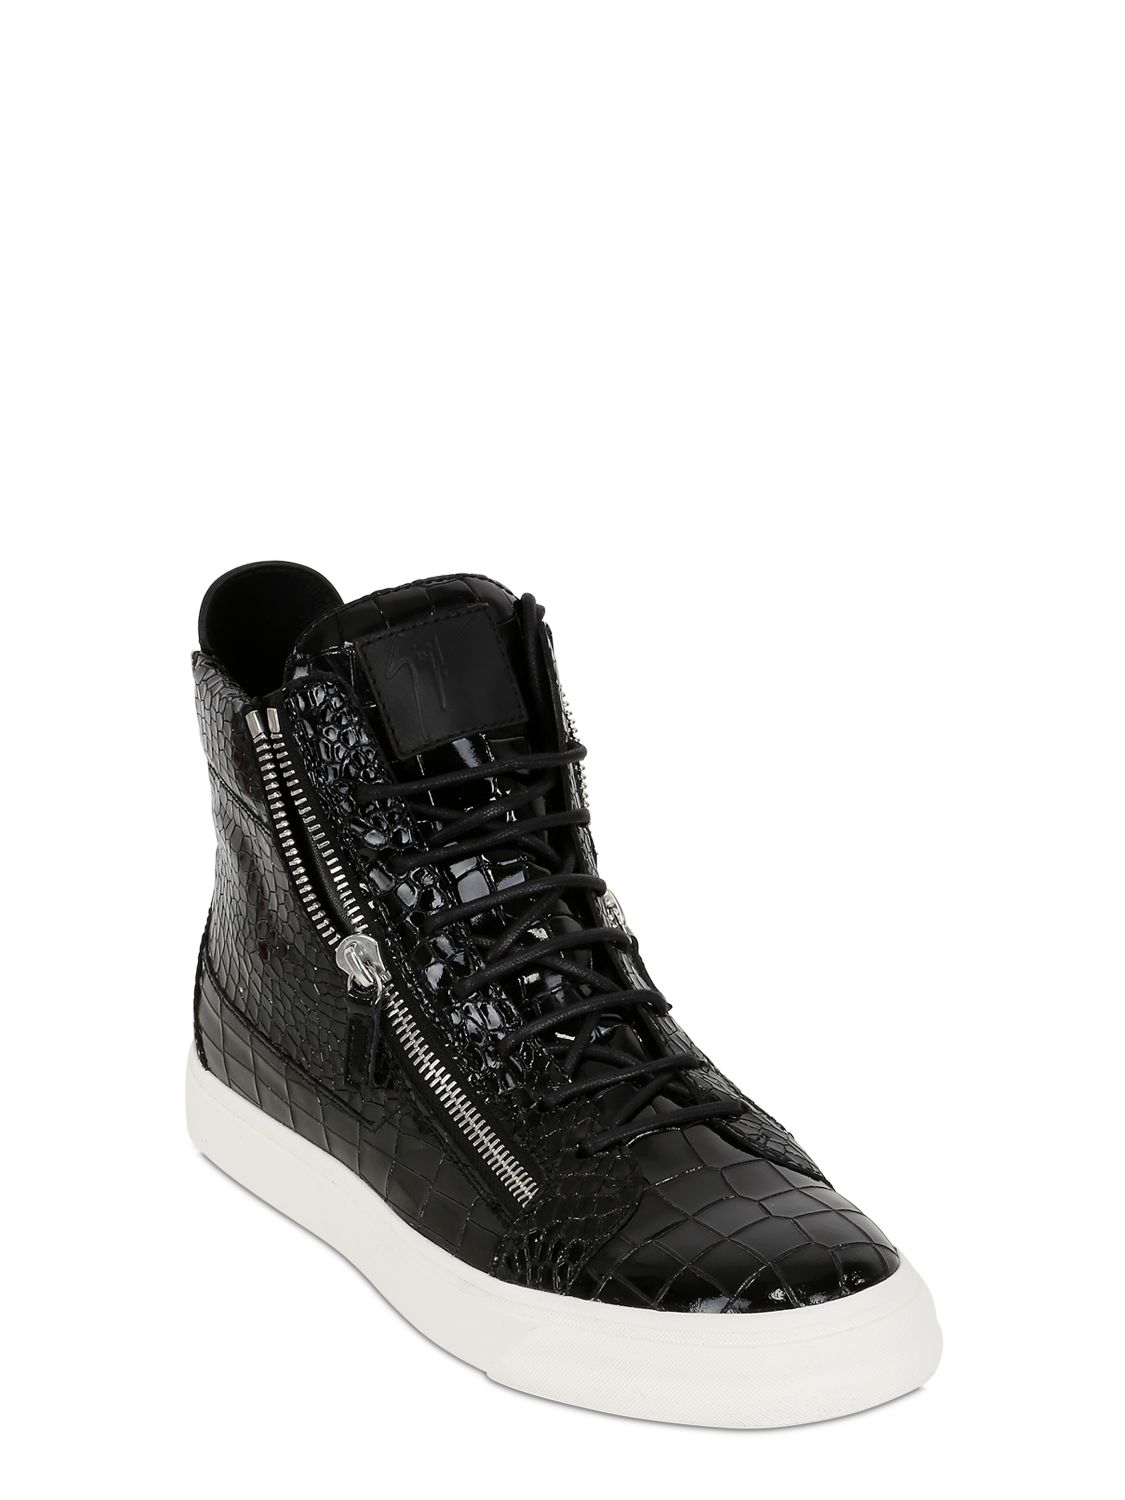 050fa662bcee0 Giuseppe Zanotti Embossed Patent Leather High Top Sneaker in Black ...